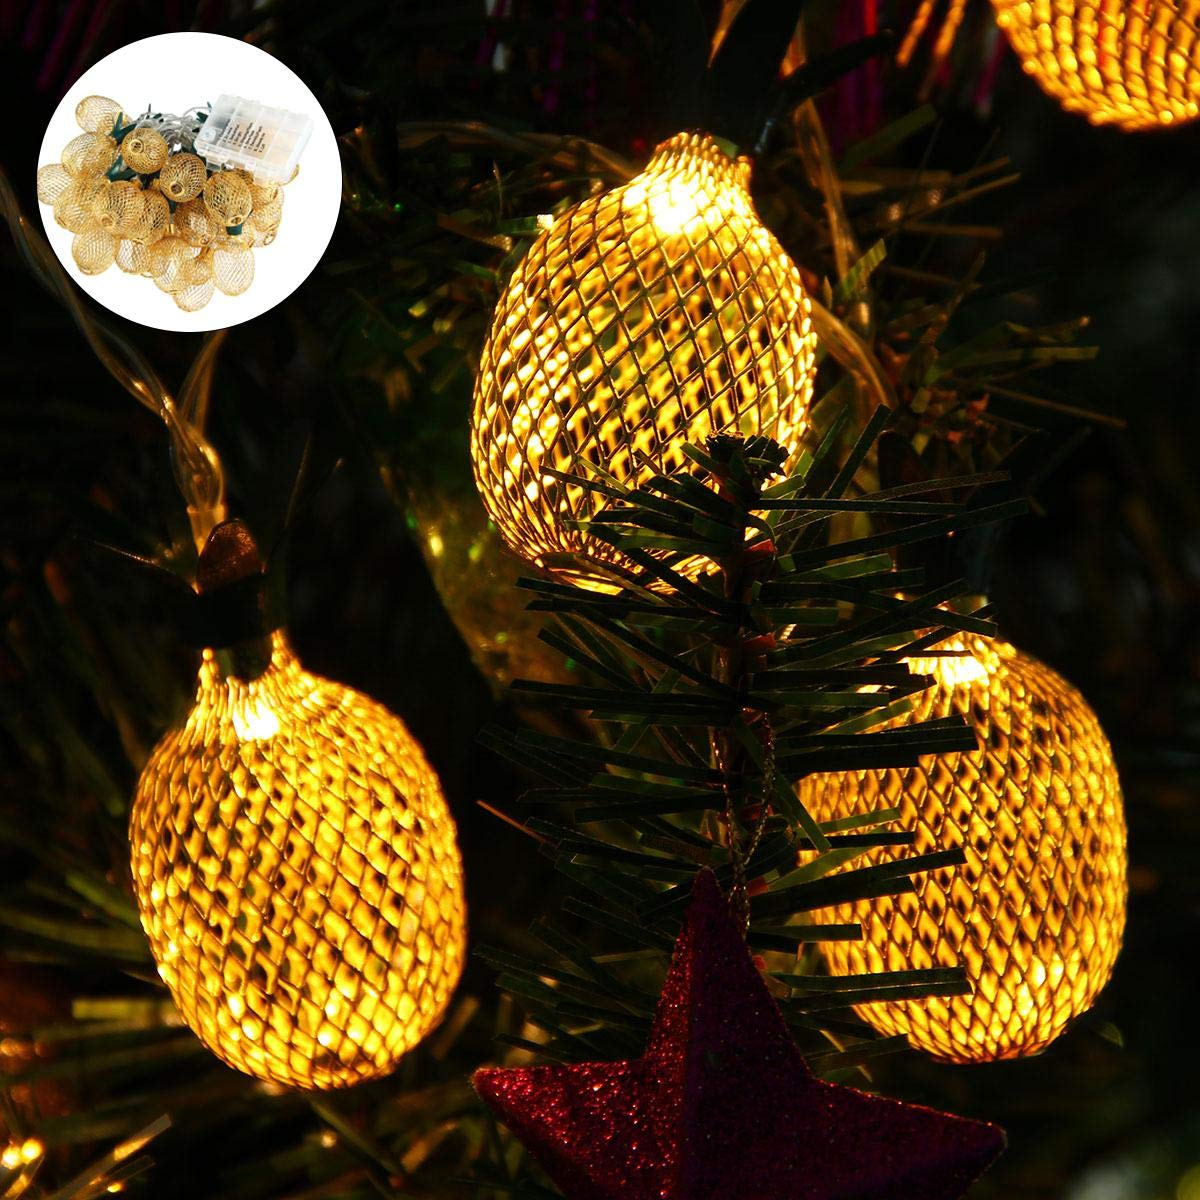 Pineapple String Lights, 200in/5m 40 LED Bulbs WaterproofBattery OperatedLantern String Lights with Battery Box Fairy Lights for Wedding Garden Festival Party Halloween Christmas Indoor & Outdoor by Umiwe (Image #7)